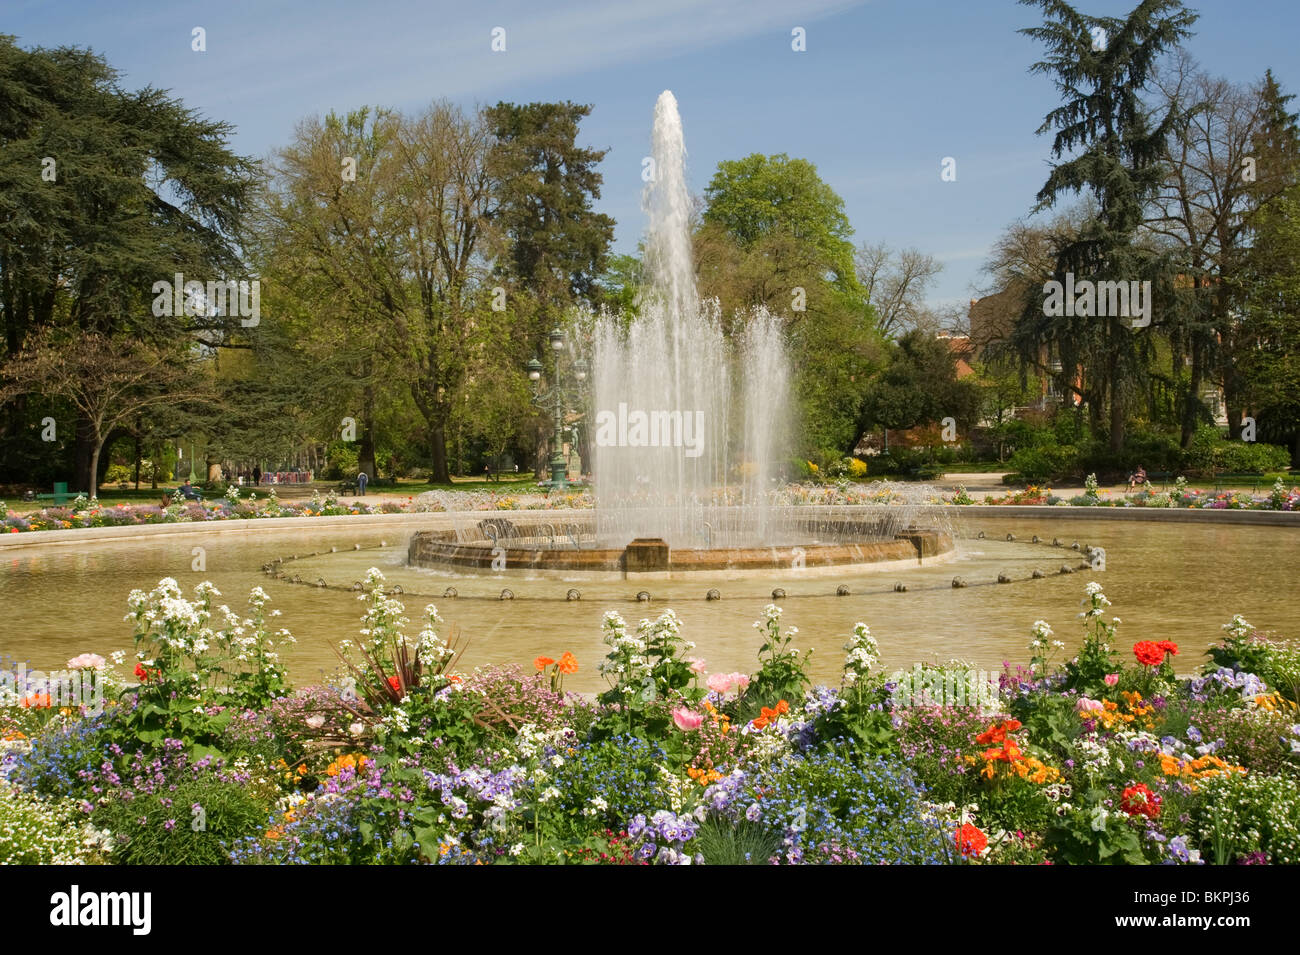 Jardin du Grand Rond and Fountain with Beautiful Flower Beds in ...